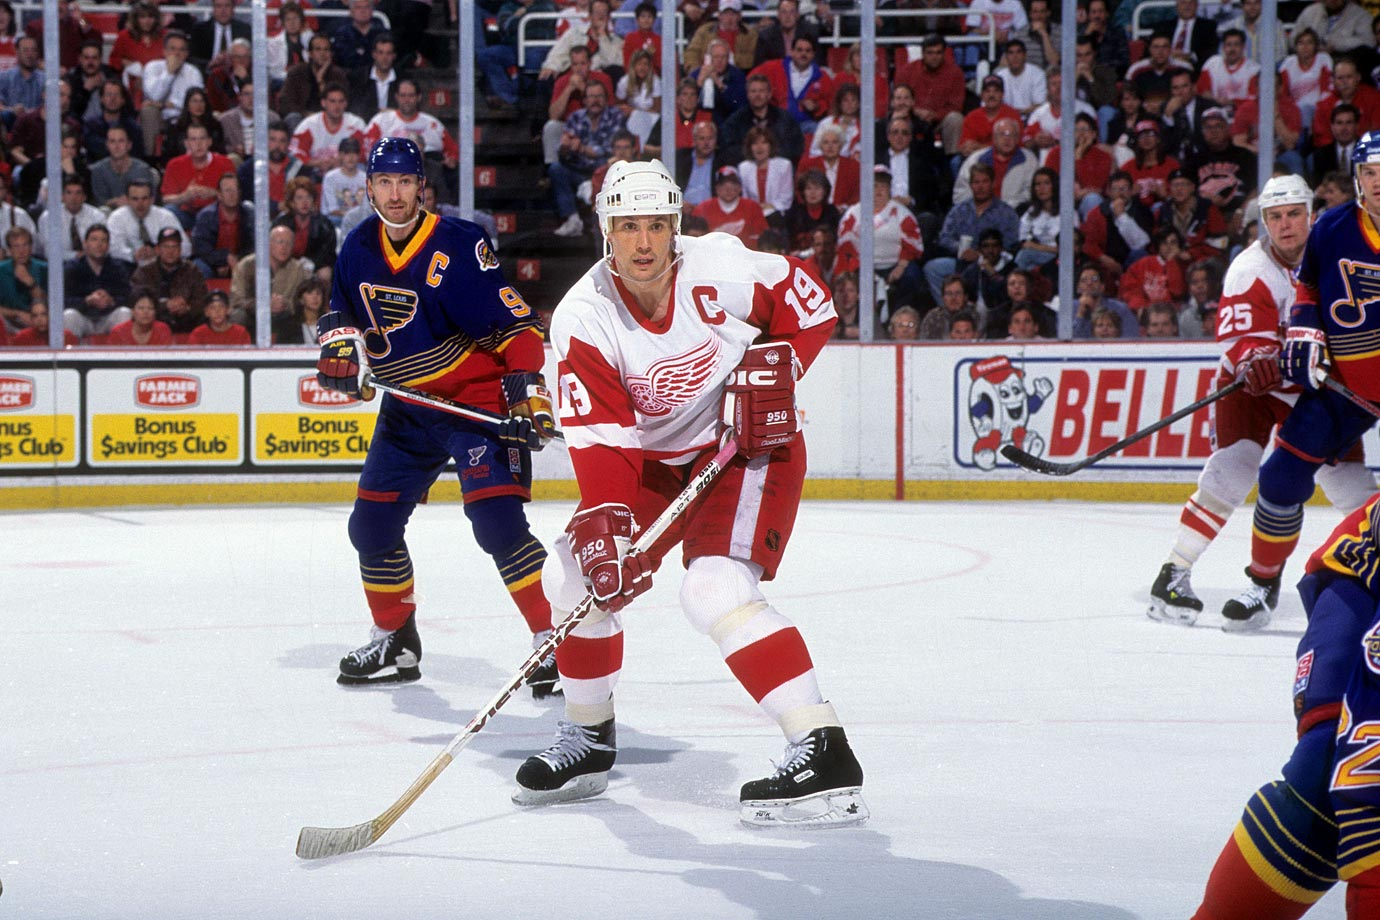 "Red Wings captain Steve Yzerman ended an epic goaltending duel by grabbing a puck off Wayne Gretzky's stick, taking off and beating Jon Casey with a slap shot from the blue line at 1:15 of double overtime. ""I couldn't believe it went in,"" Yzerman said after the game. ""I don't score a whole lot of goals from out there. To score a goal in overtime, particularly in Game 7, is a tremendous thrill. Every player dreams of that."""